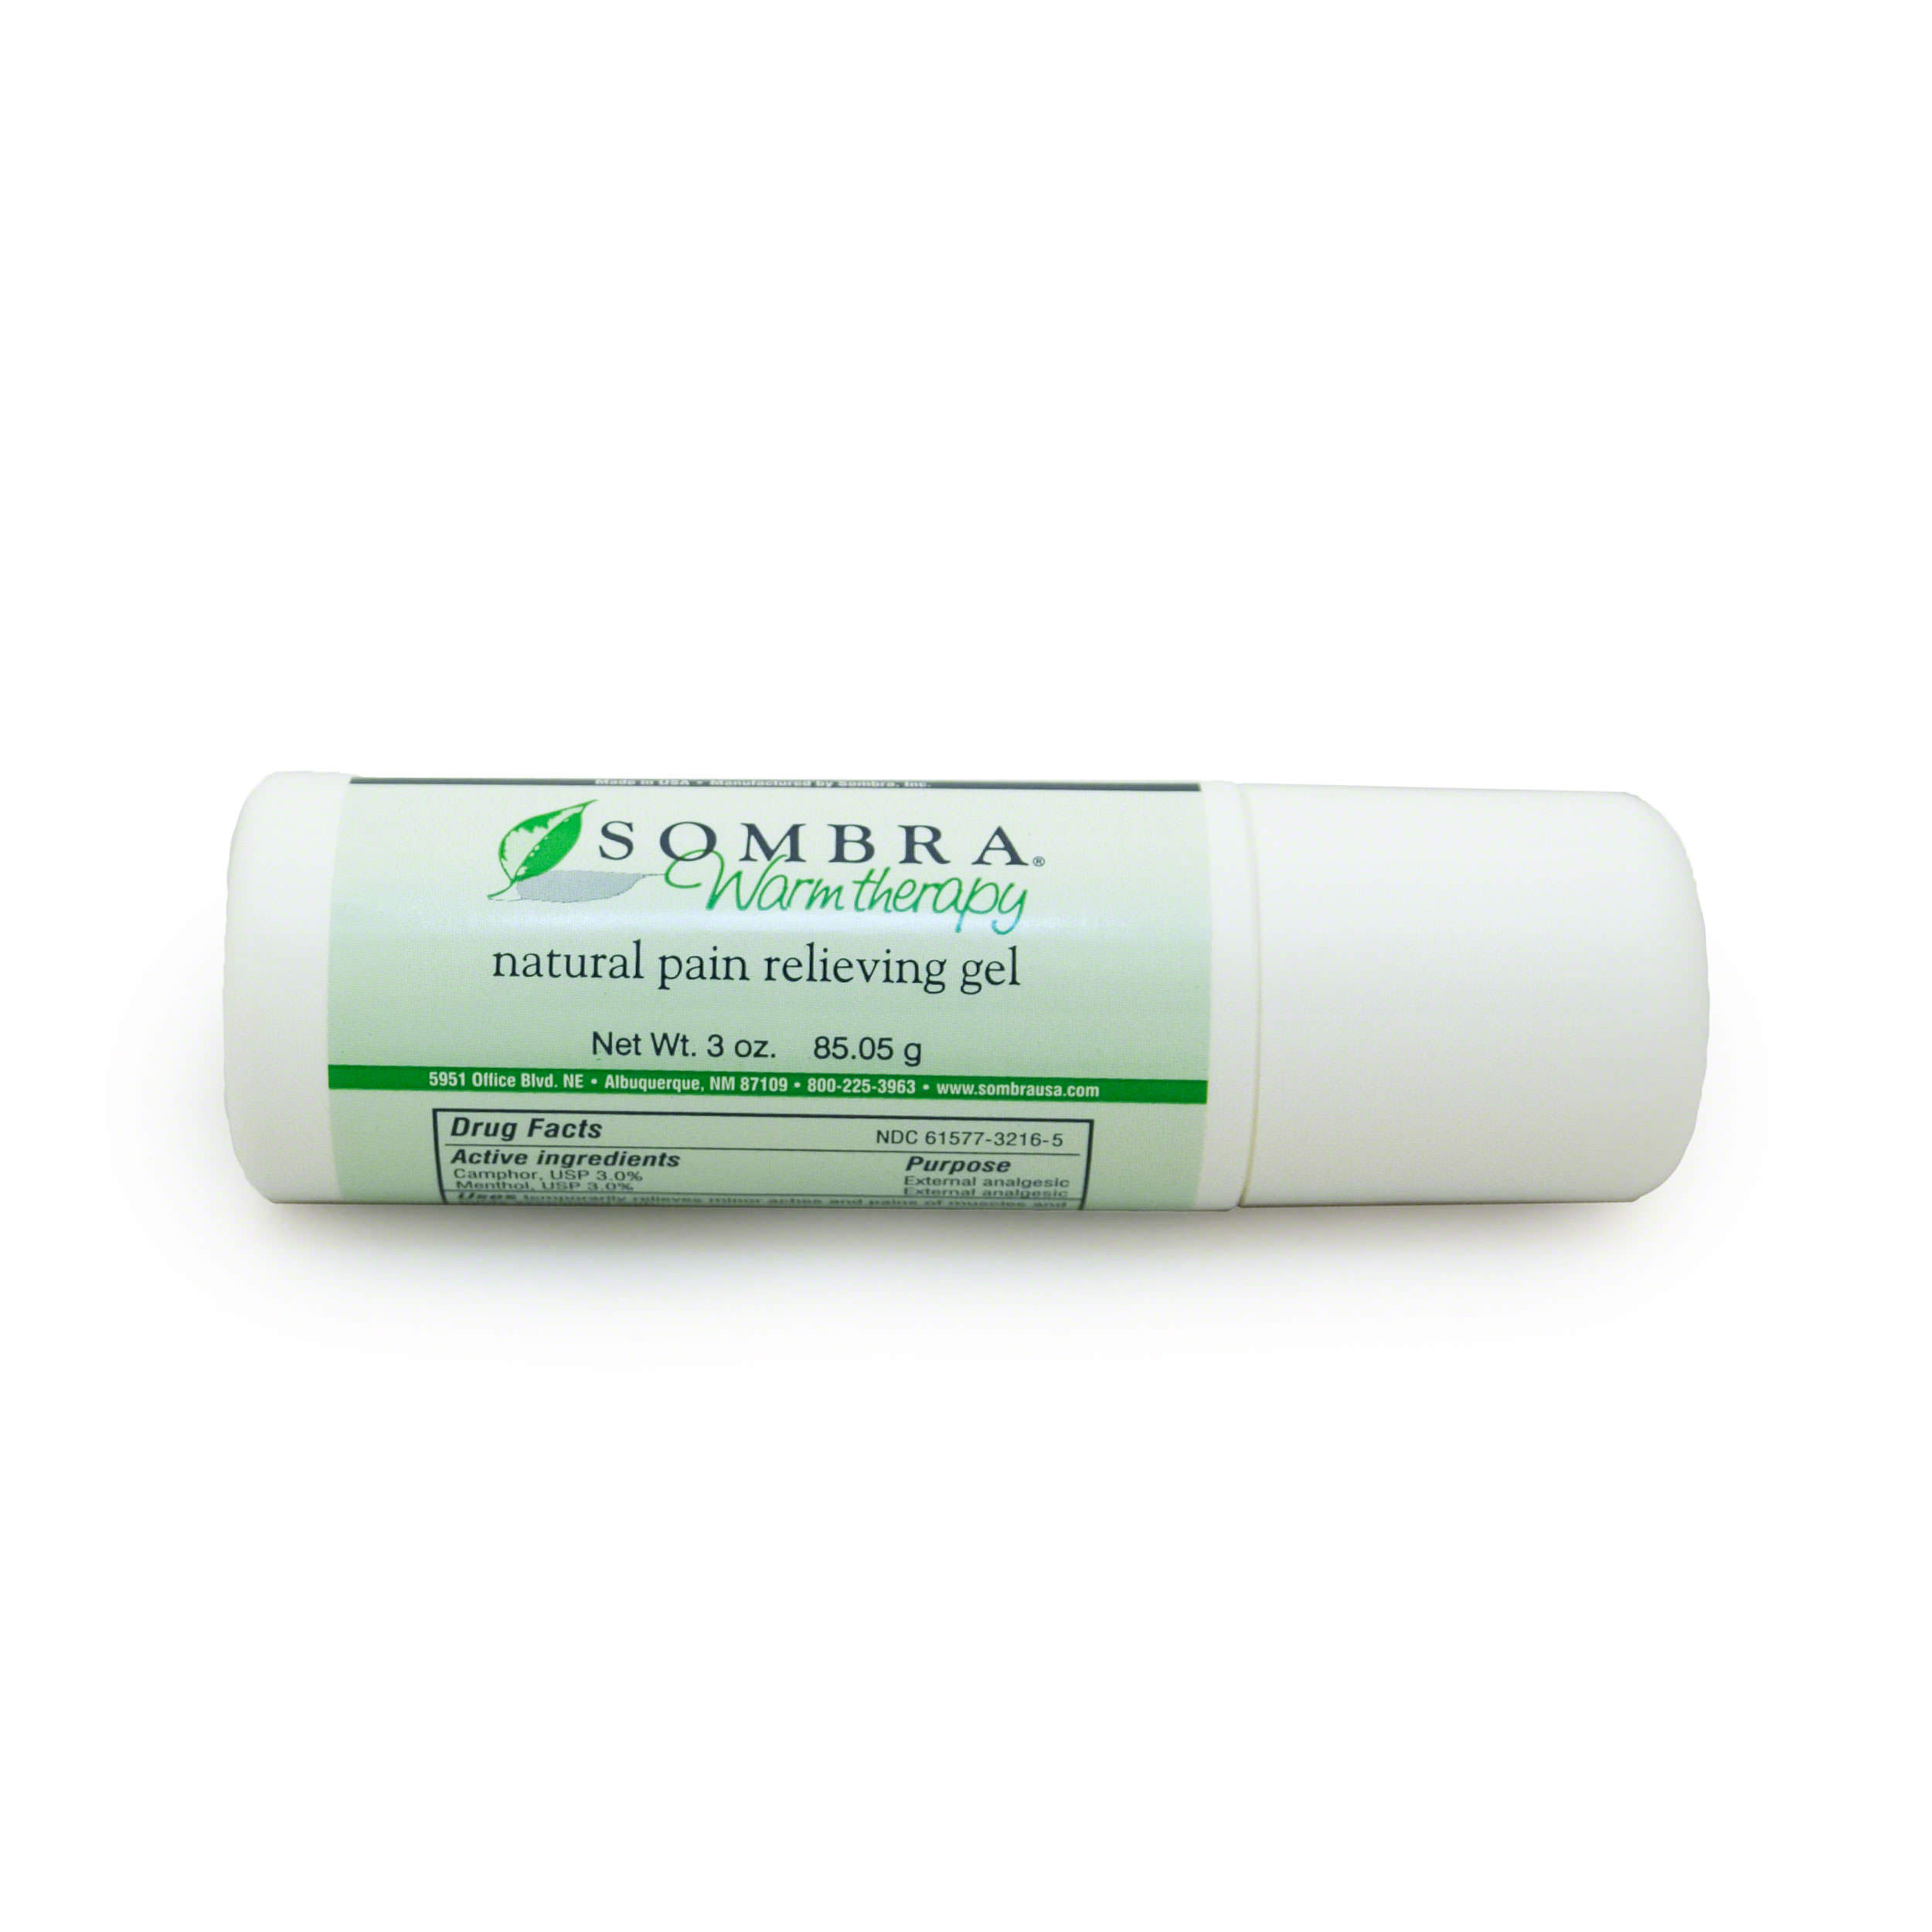 Sombra-Warm-Therapy-Natural-Pain-Relieving-Gel thumbnail 14